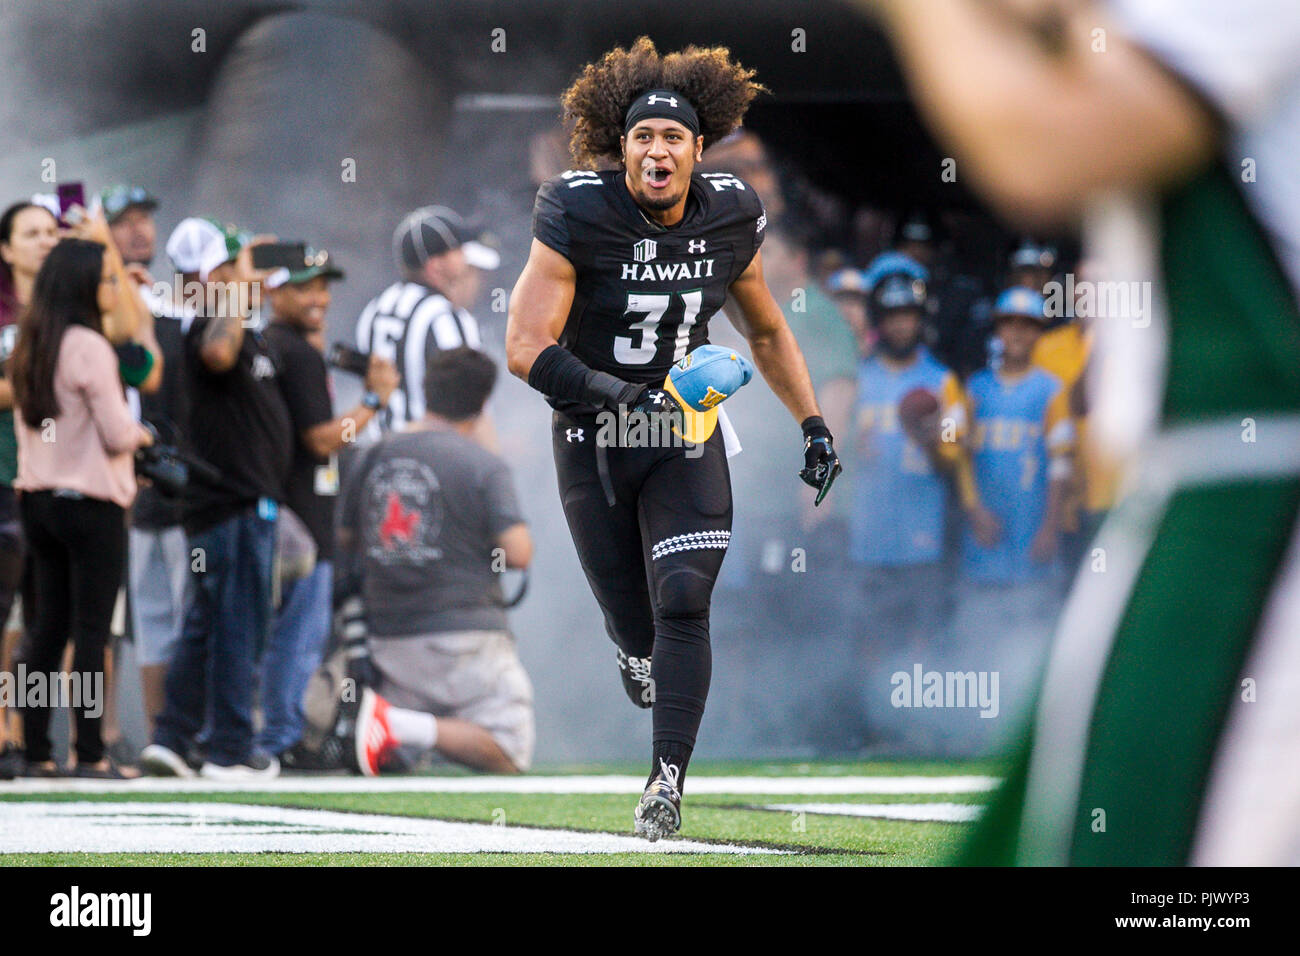 Honolulu, Hawaii. September 8, 2018 - Hawaii Rainbow Warriors linebacker Jahlani Tavai #31 is introduced before the NCAA football game between the Rice Owls and the University of Hawaii Warriors at Aloha Stadium in Honolulu, Hawaii. Glenn Yoza/CSM Credit: Cal Sport Media/Alamy Live News Stock Photo